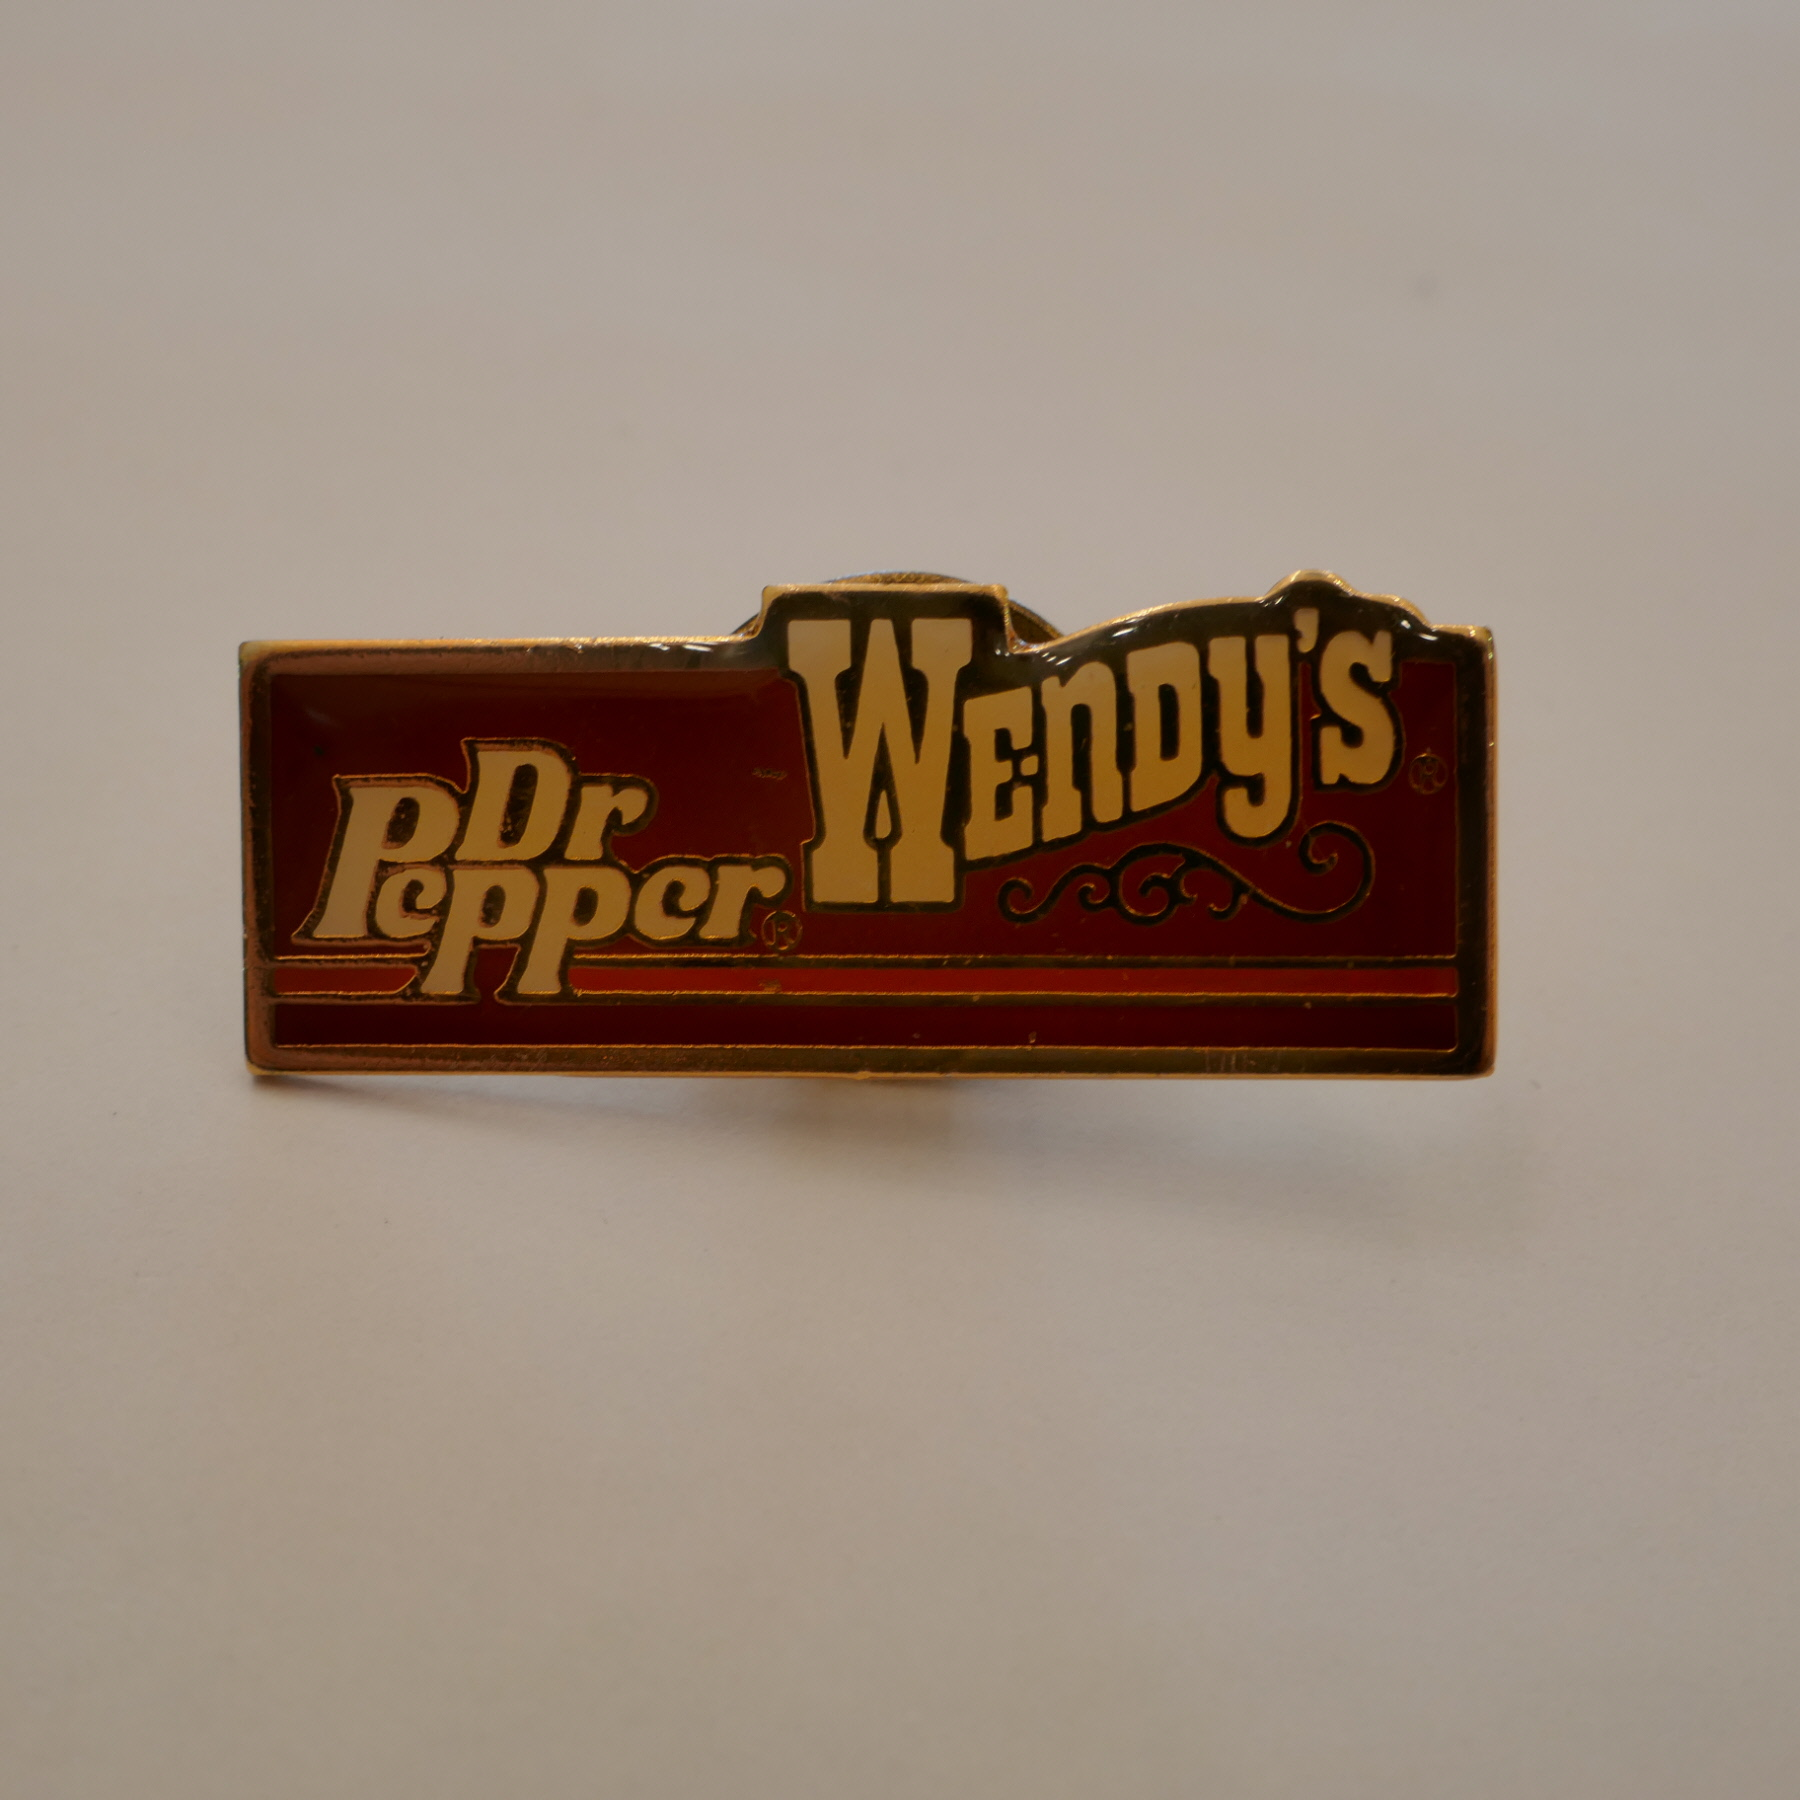 DrPepper × WENDY'S pins